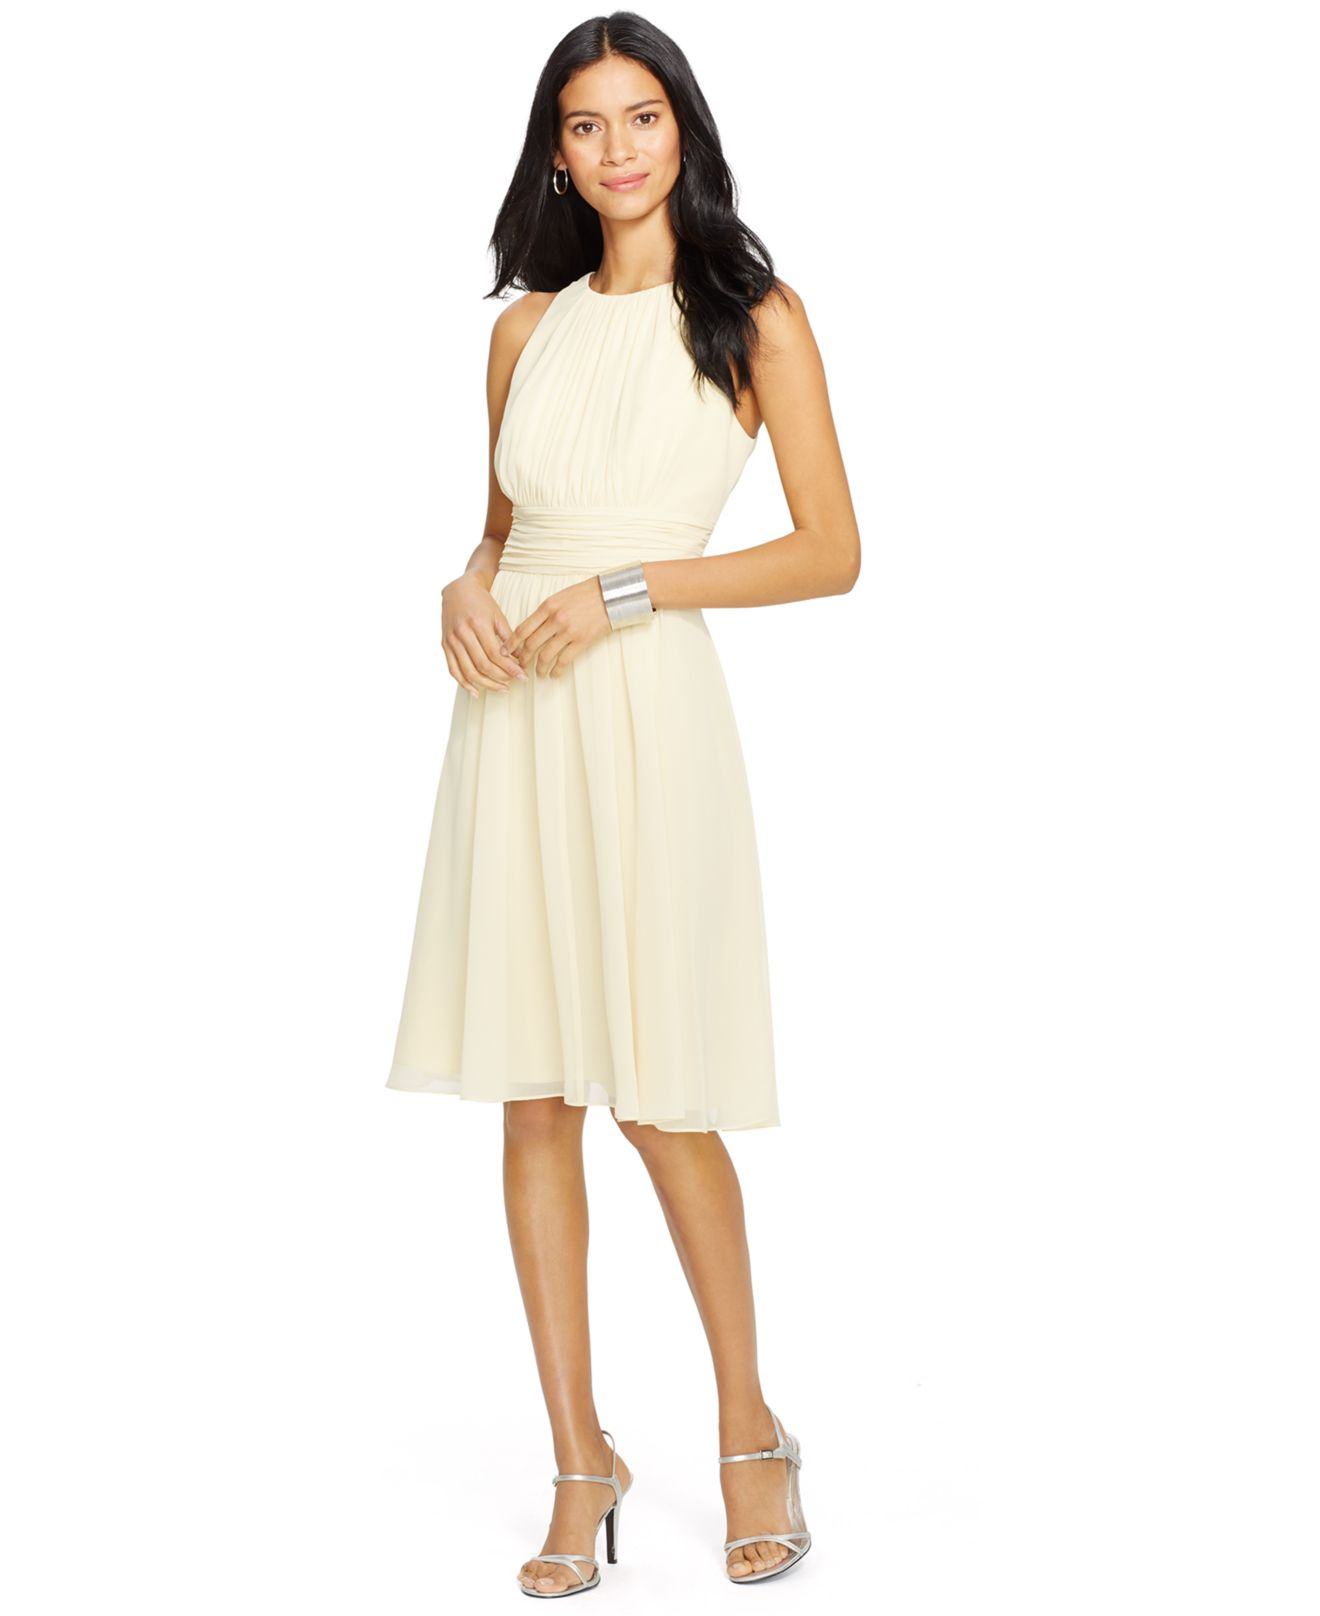 718bc331f6ede Lyst - Lauren by Ralph Lauren Ruched Sleeveless Dress in Natural